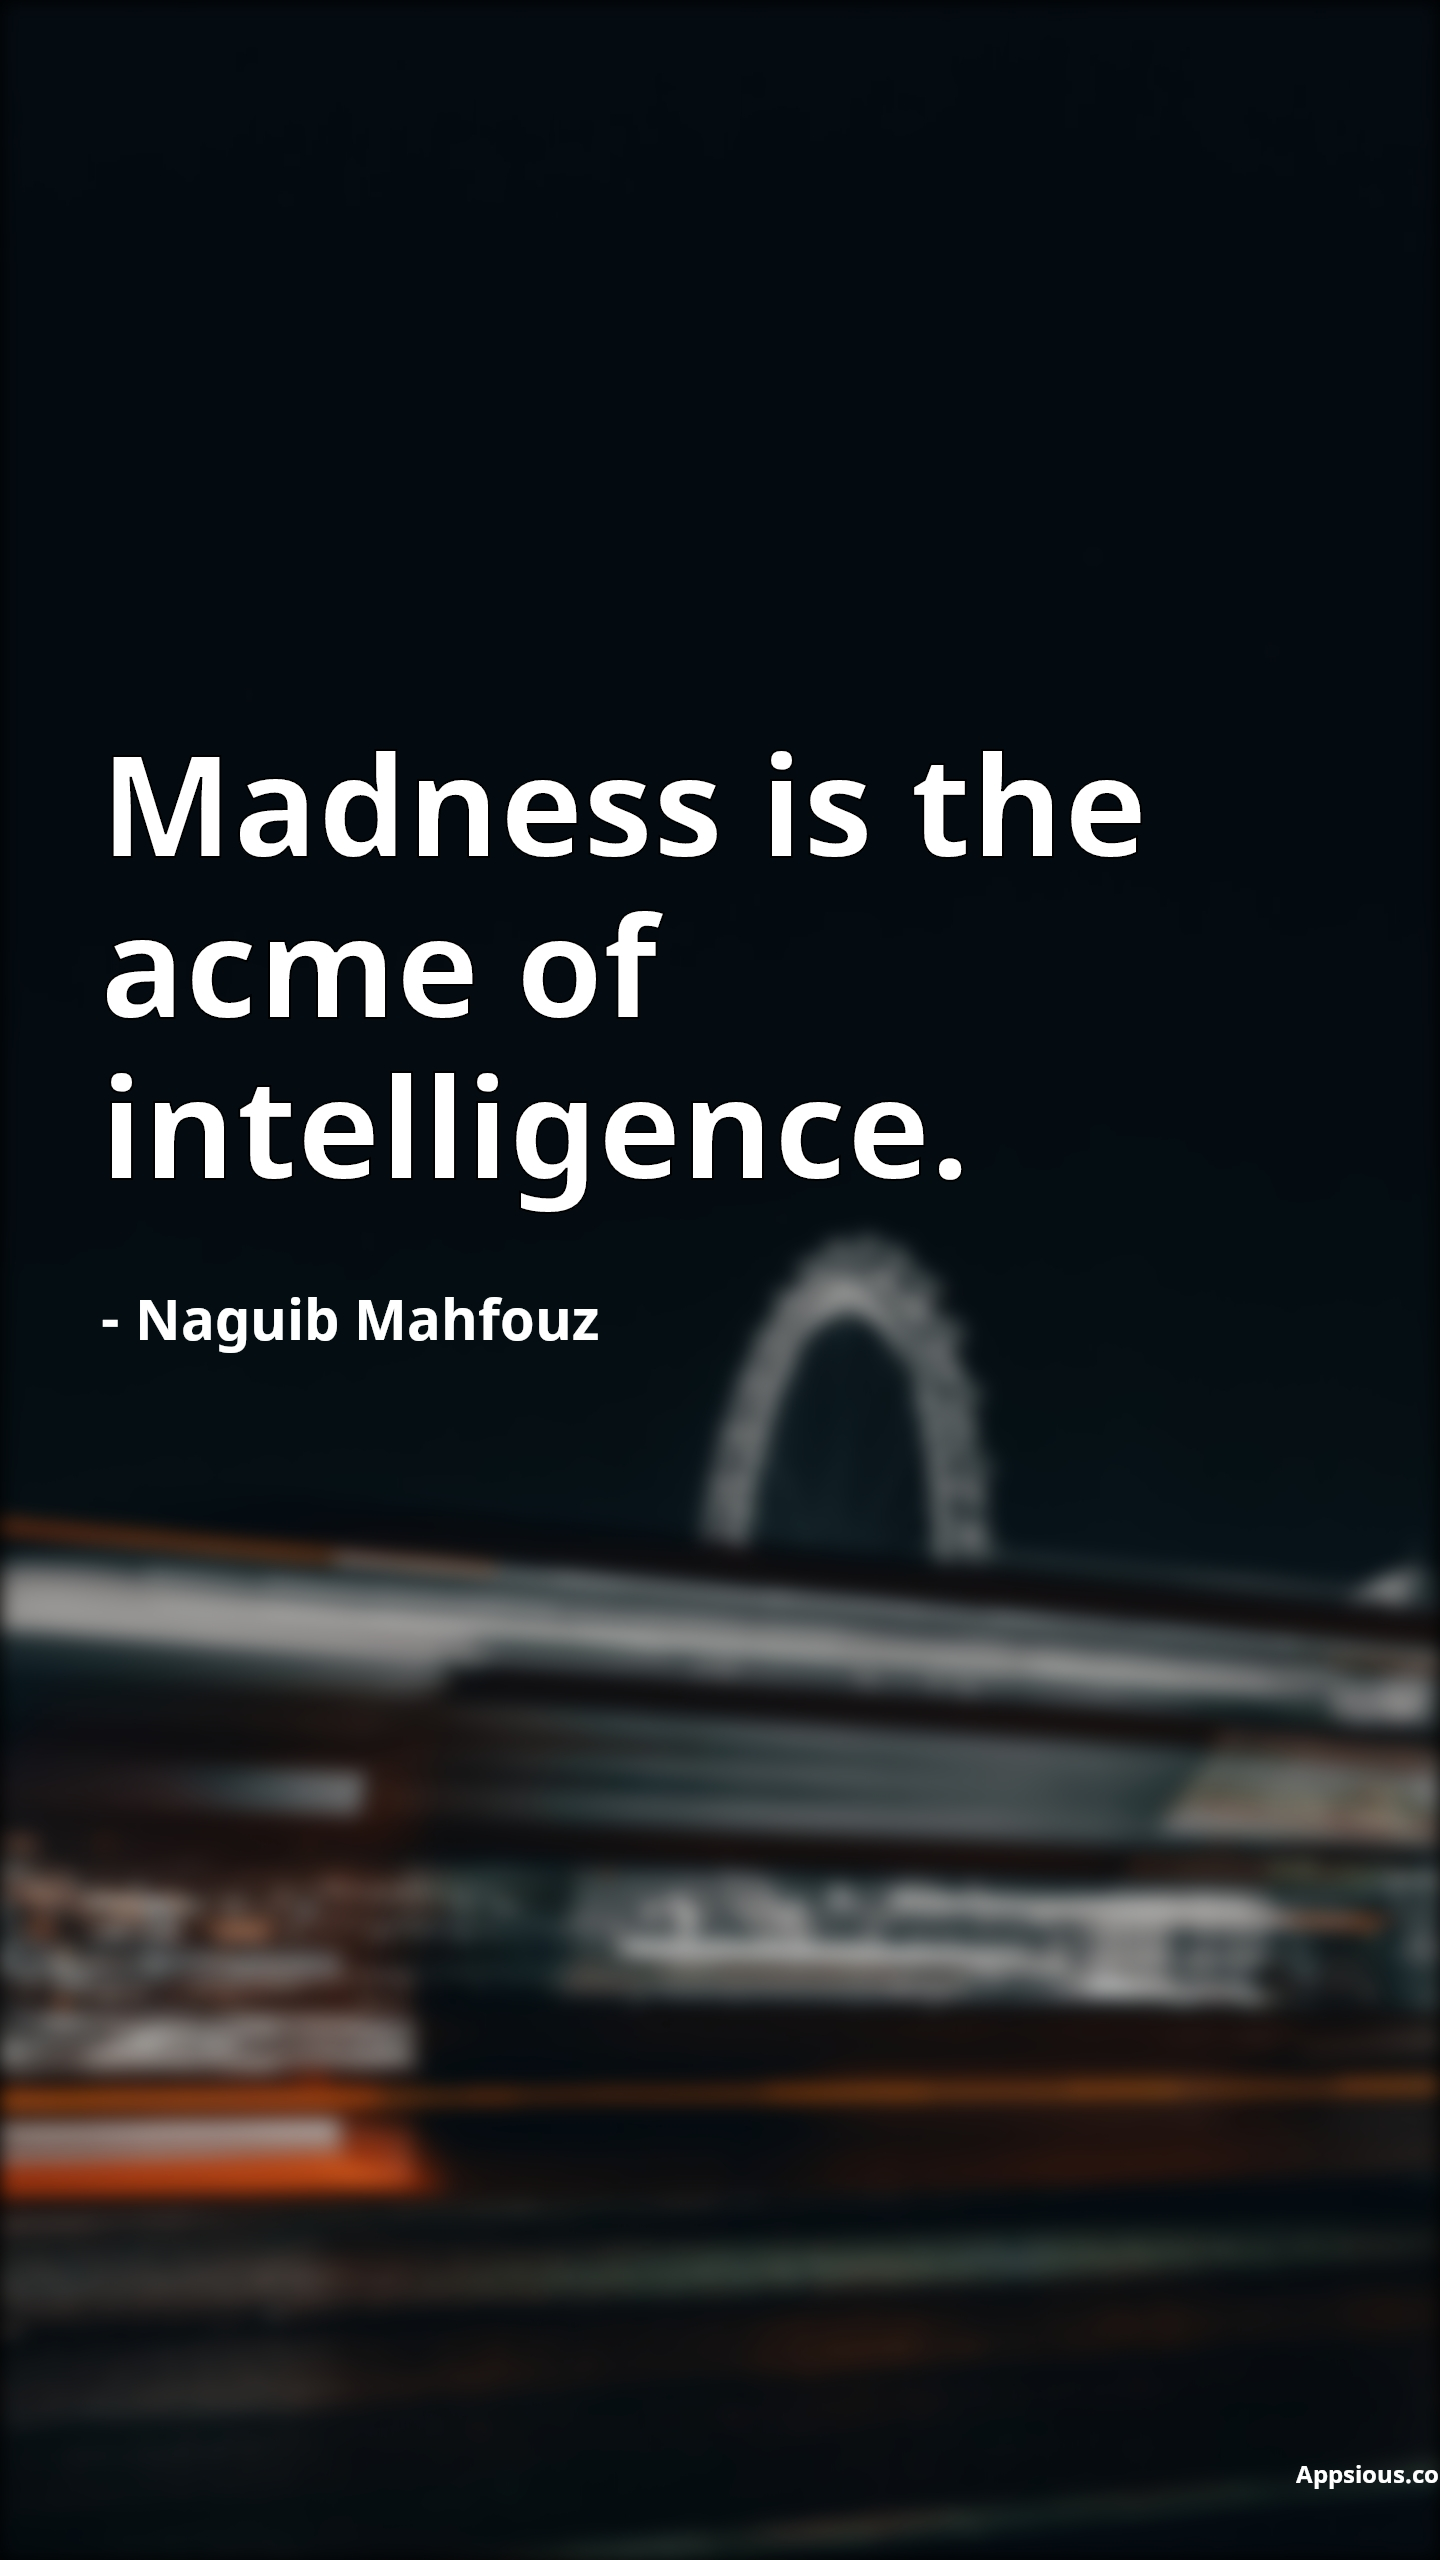 Madness is the acme of intelligence.